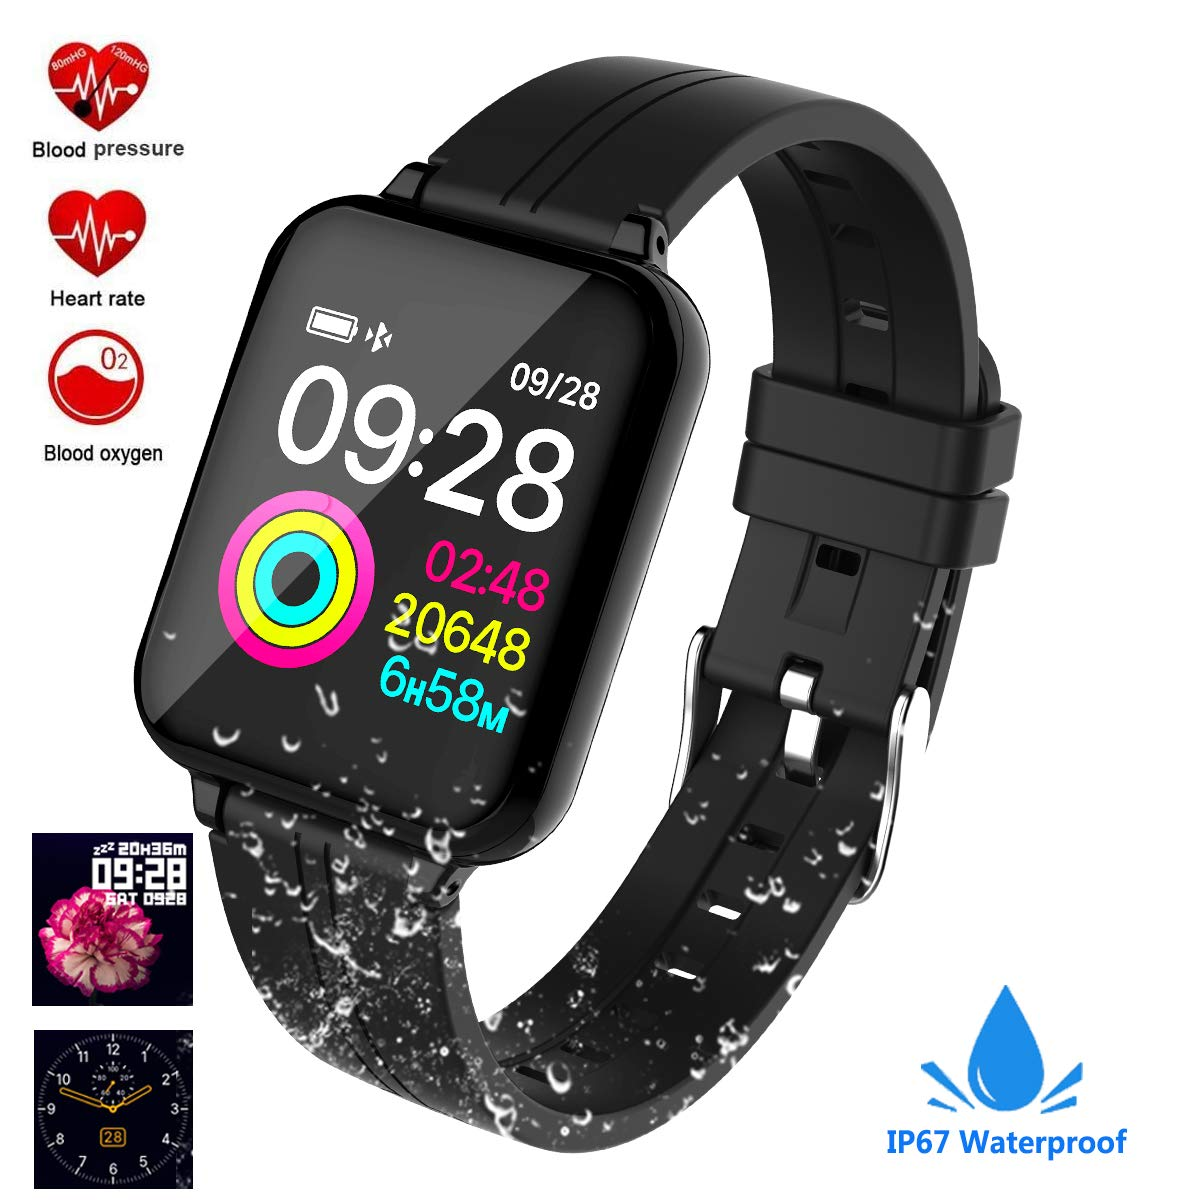 feifuns Smart Watch, Fitness Tracker Activity Tracker with Heart Rate Monitor 1.3 Color Screen with Blood Pressure Sleep Monitor Step Tracker Calorie Counter IP67 Waterproof Band for Men Women Kids